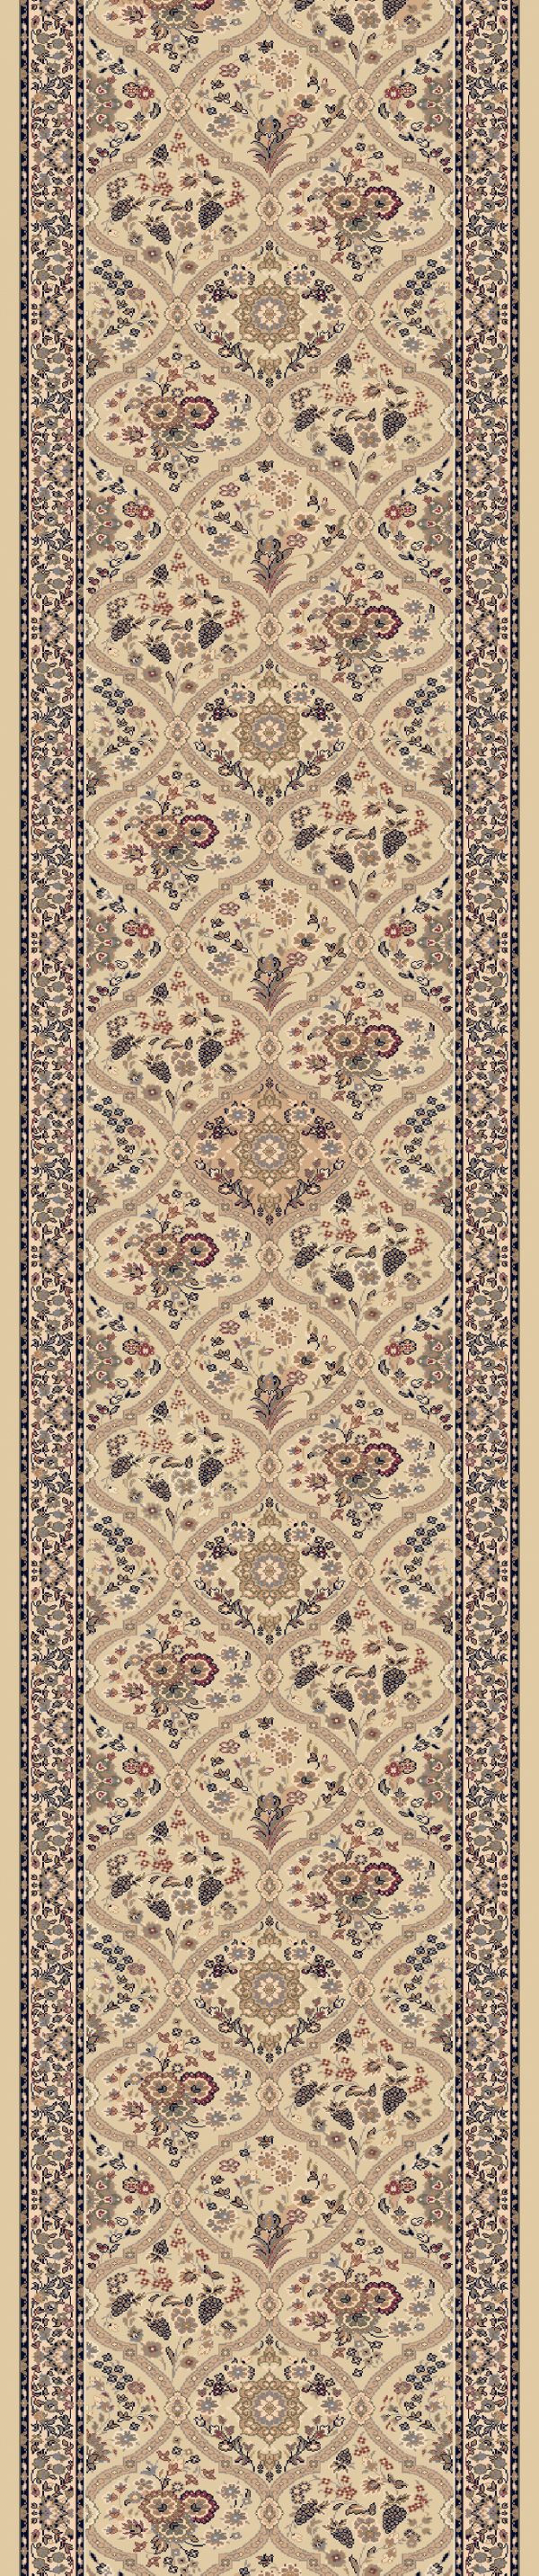 Brilliant 7211 820 Linen 2 9 Quot Wide Runner By Dynamic Rugs